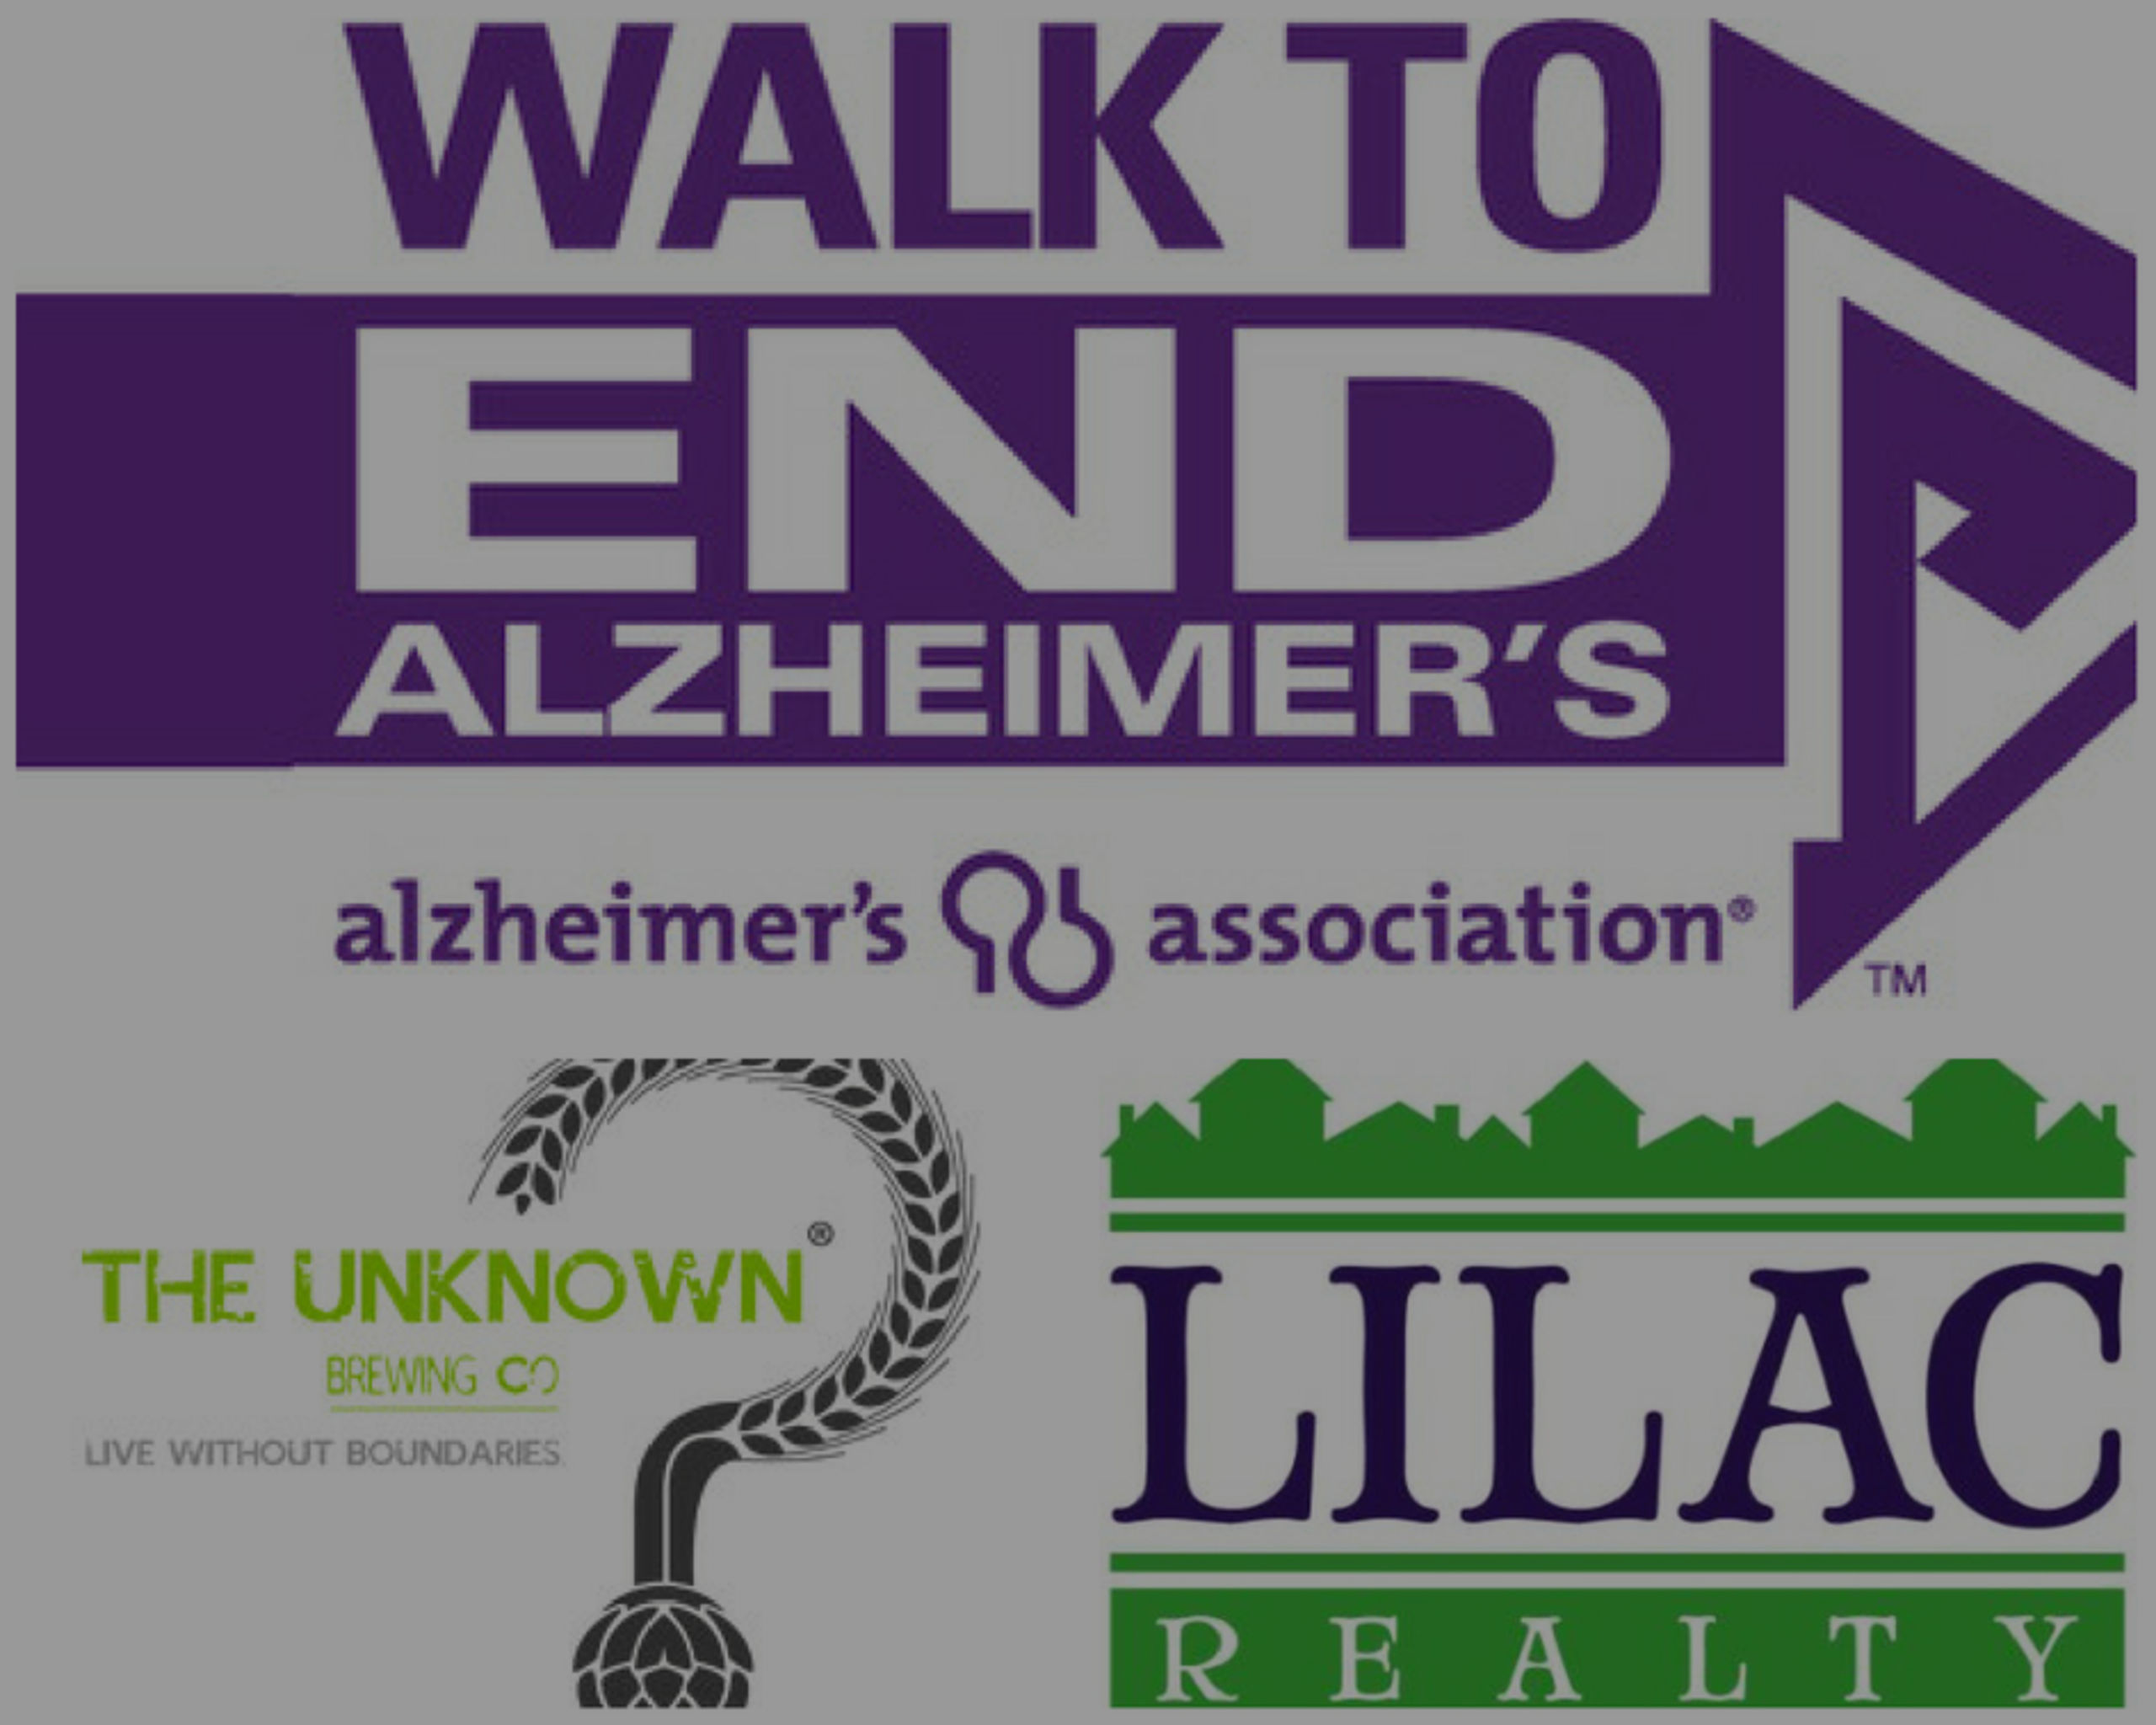 Walk to End Alzheimer's / Unknown Brewing / Lilac Realty